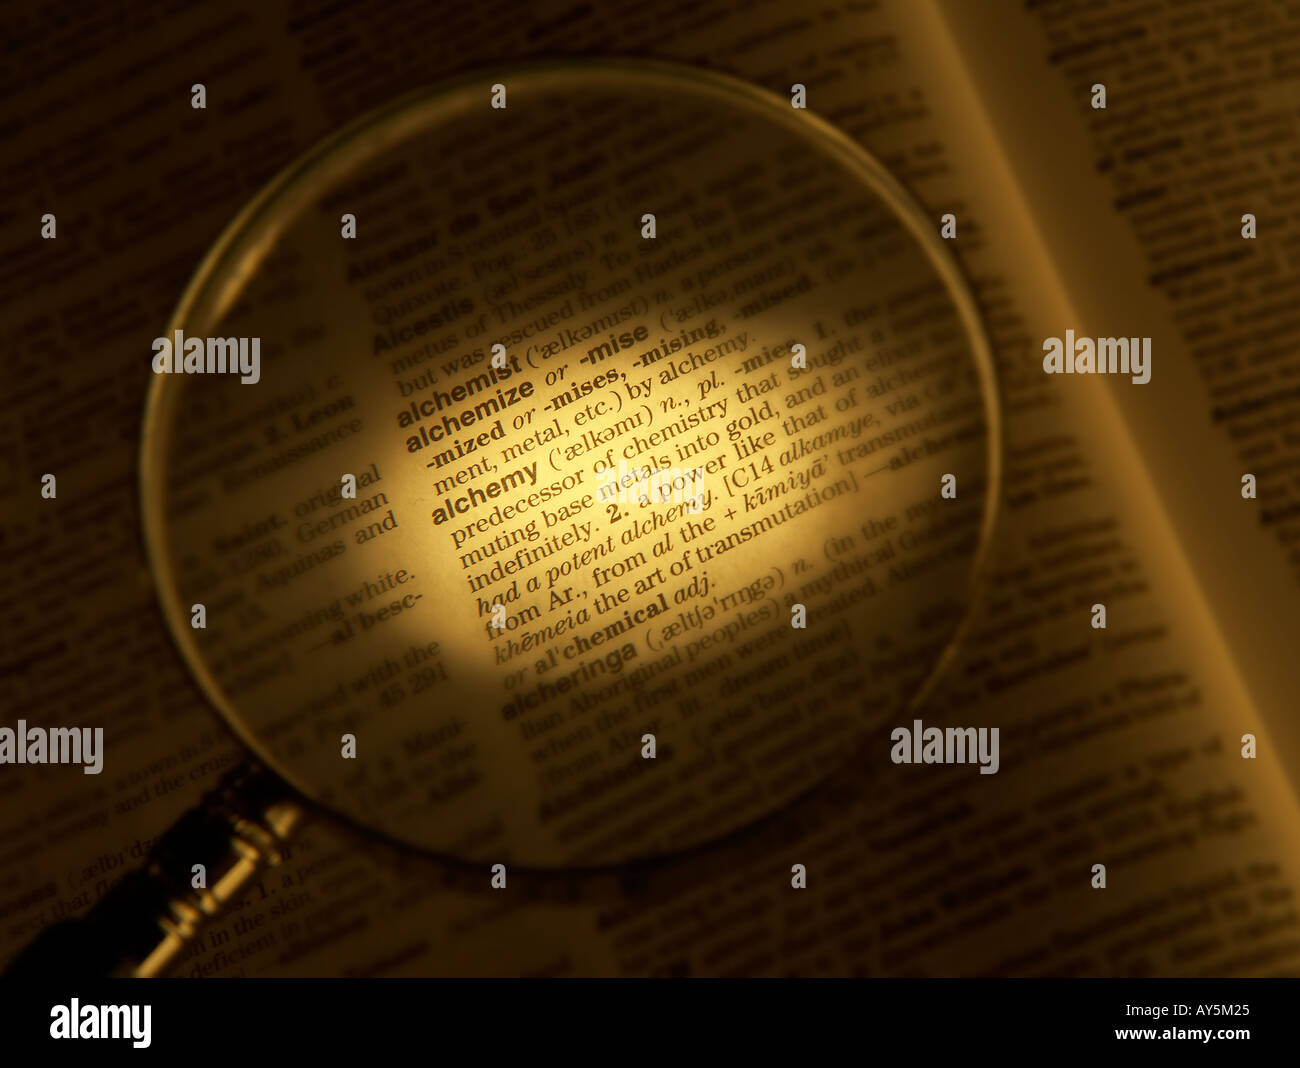 MAGNIFYING GLASS ON DICTIONARY PAGE SHOWING DEFINITION OF THE WORD ALCHEMY - Stock Image